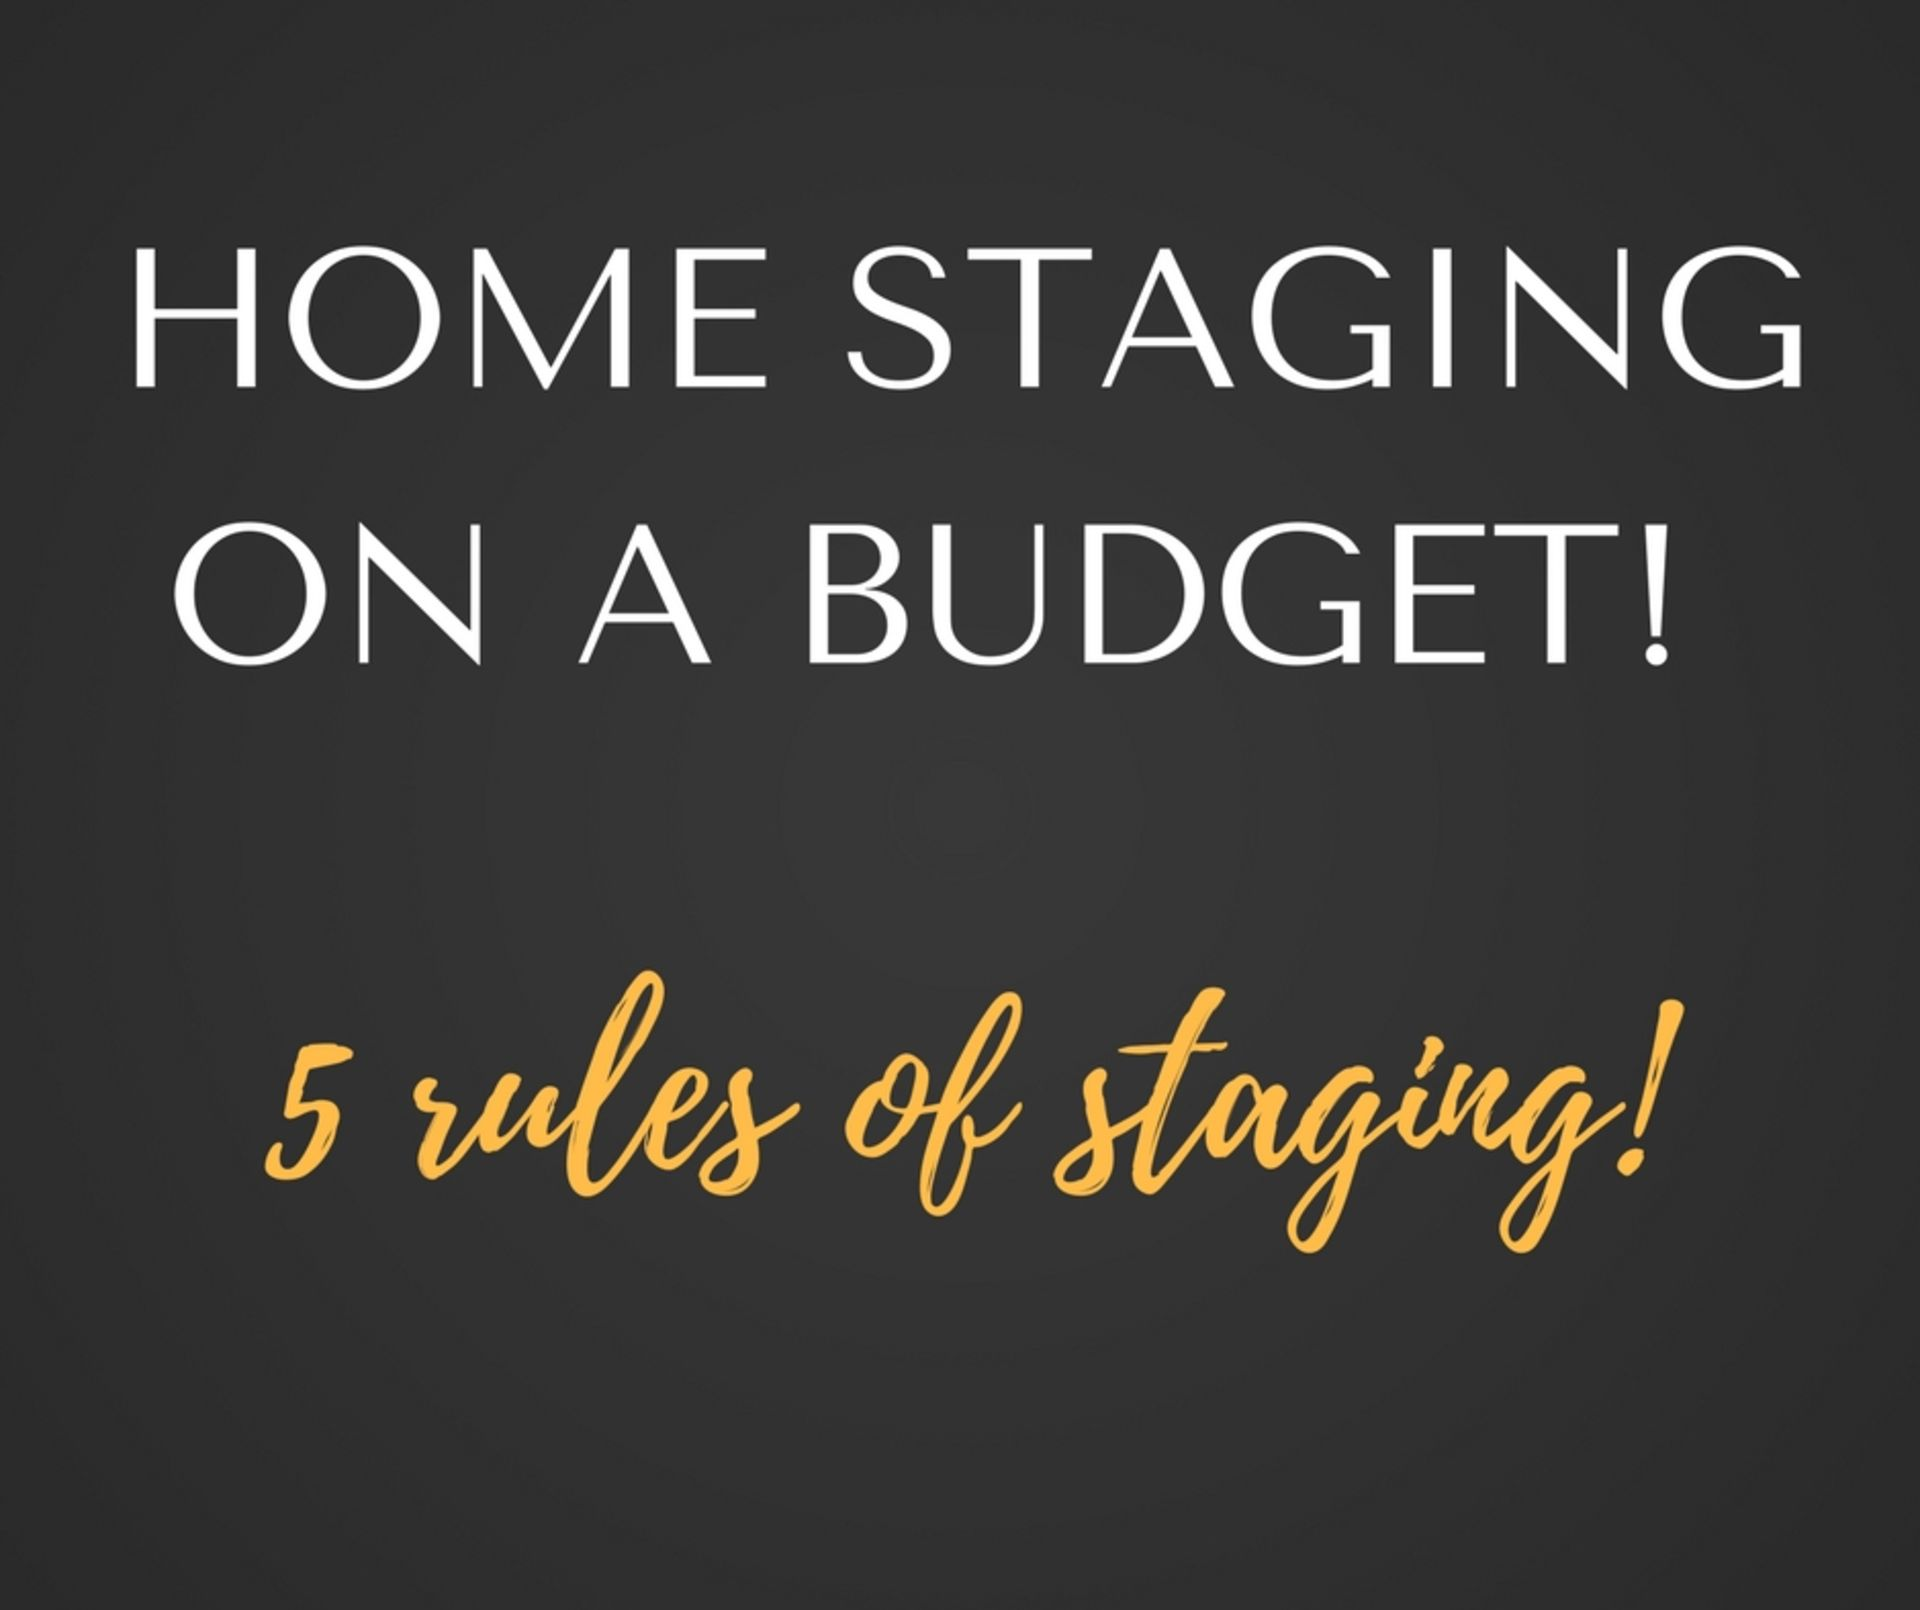 Home Staging on a Budget – 5 Rules of Staging